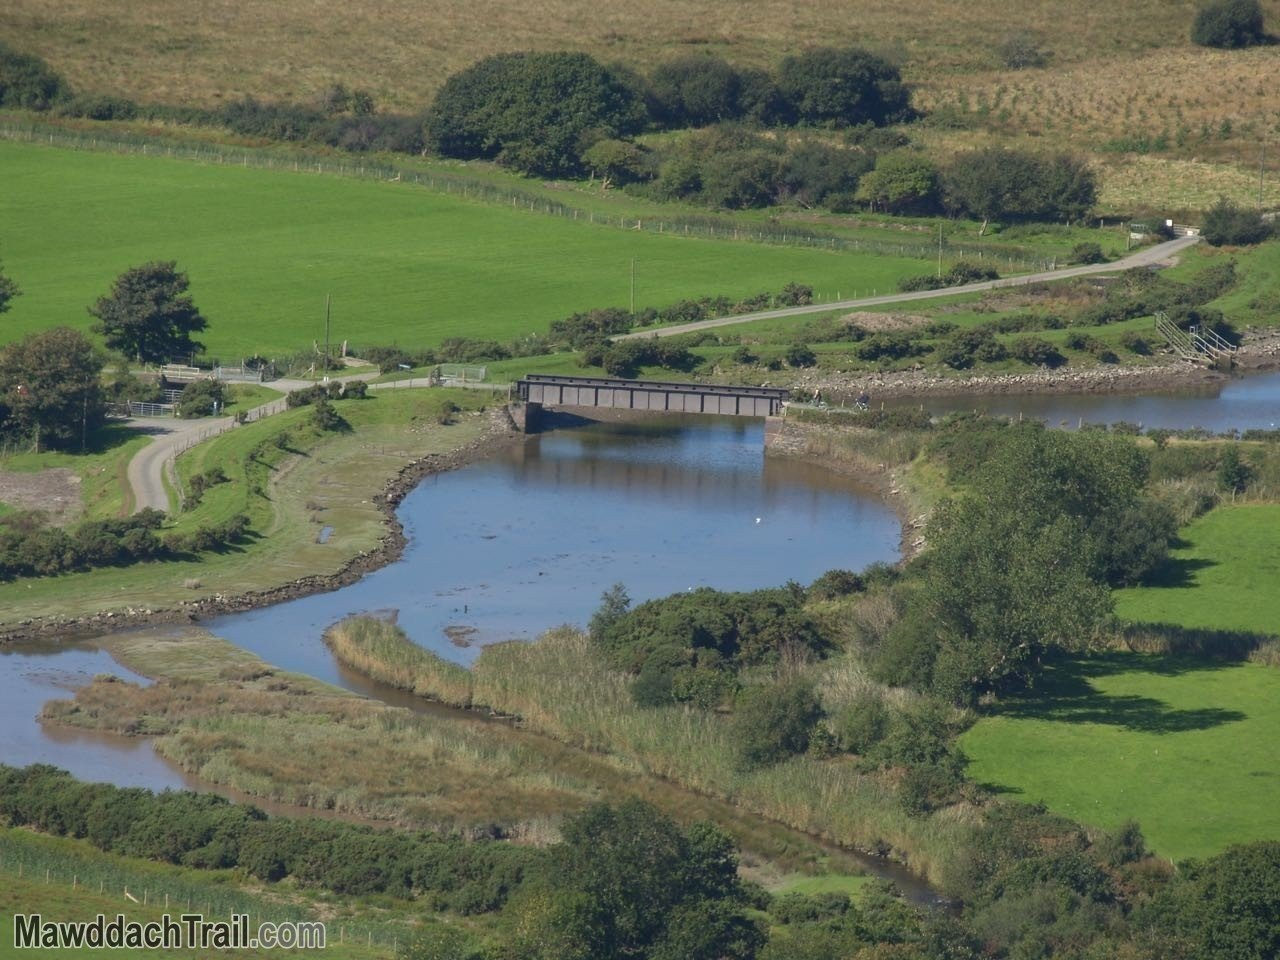 The Old Railway Bridge at Arthog